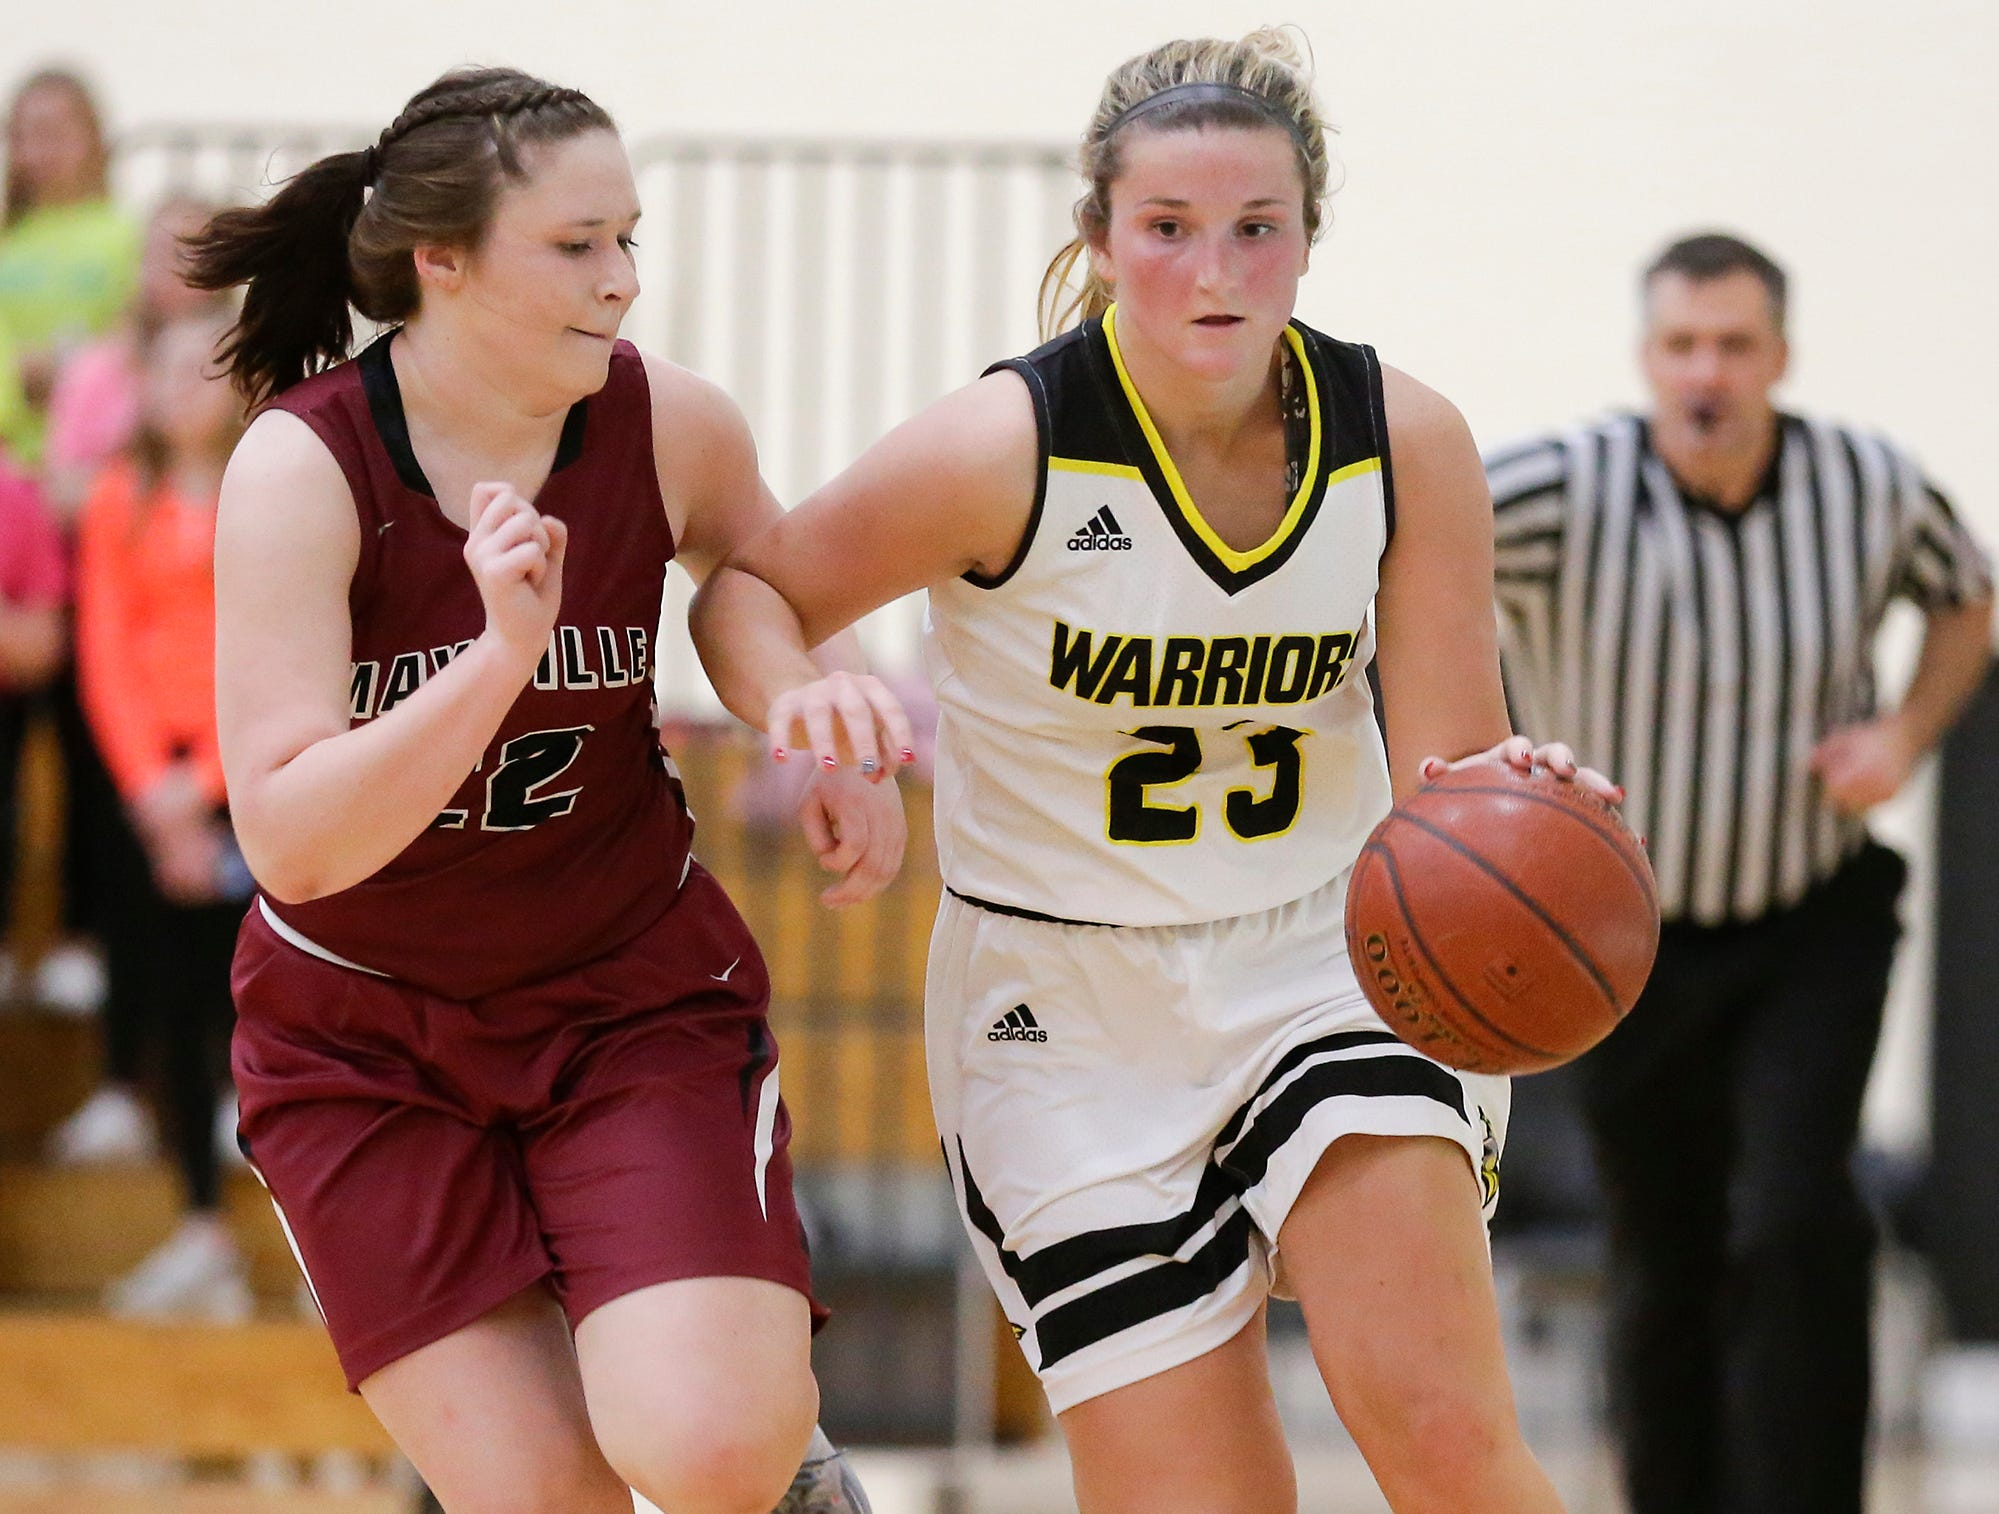 Waupun High School girls basketball's Claire Harder works her way down the court with Mayville High School's Reannah Zimmer Saturday, February 23, 2019 during their WIAA Division 4 sectional quarterfinal game in Waupun. Waupun won the game 62-45. Doug Raflik/USA TODAY NETWORK-Wisconsin